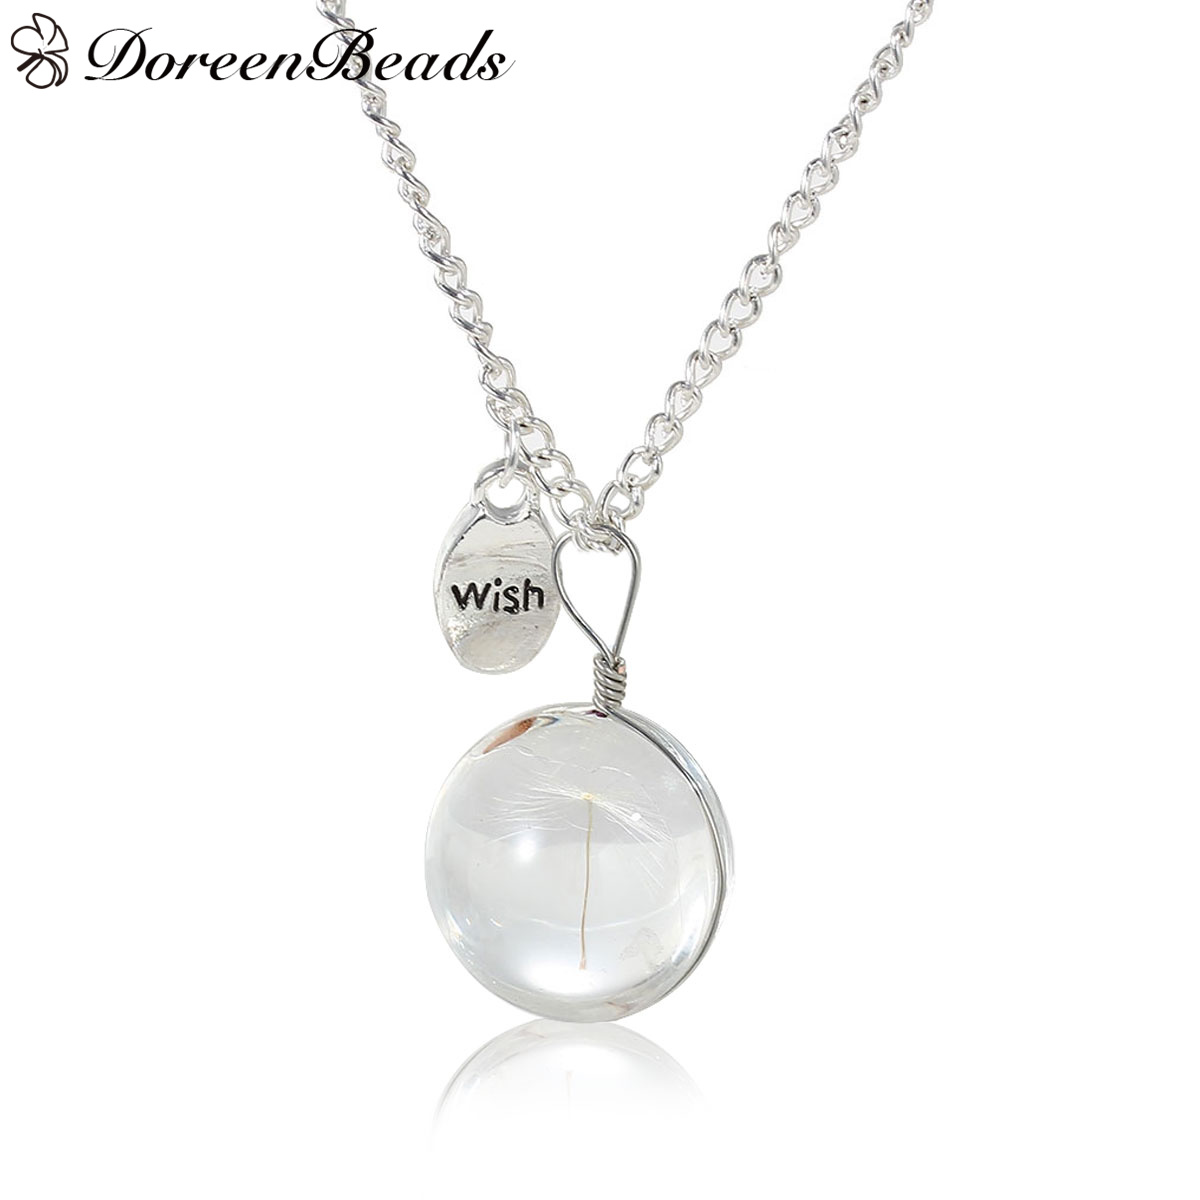 cdd5c2725f2 DoreenBeads Real Dandelion Clear Glass Round Pendant Necklace Link Curb  Chain silver color With Oval Message